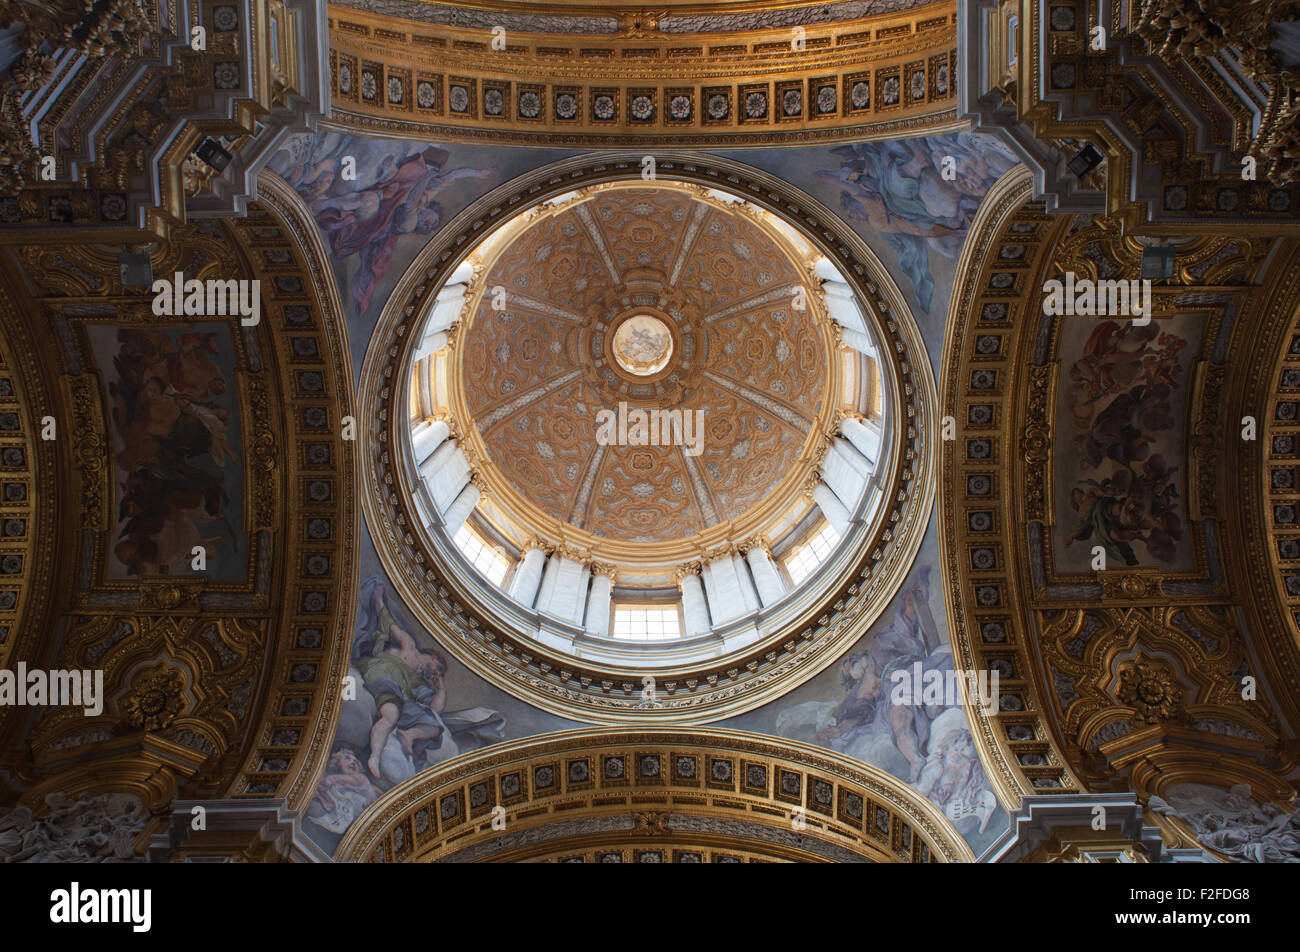 The interior of the church of Saint Sylvester the First, Rome, Italy. - Stock Image